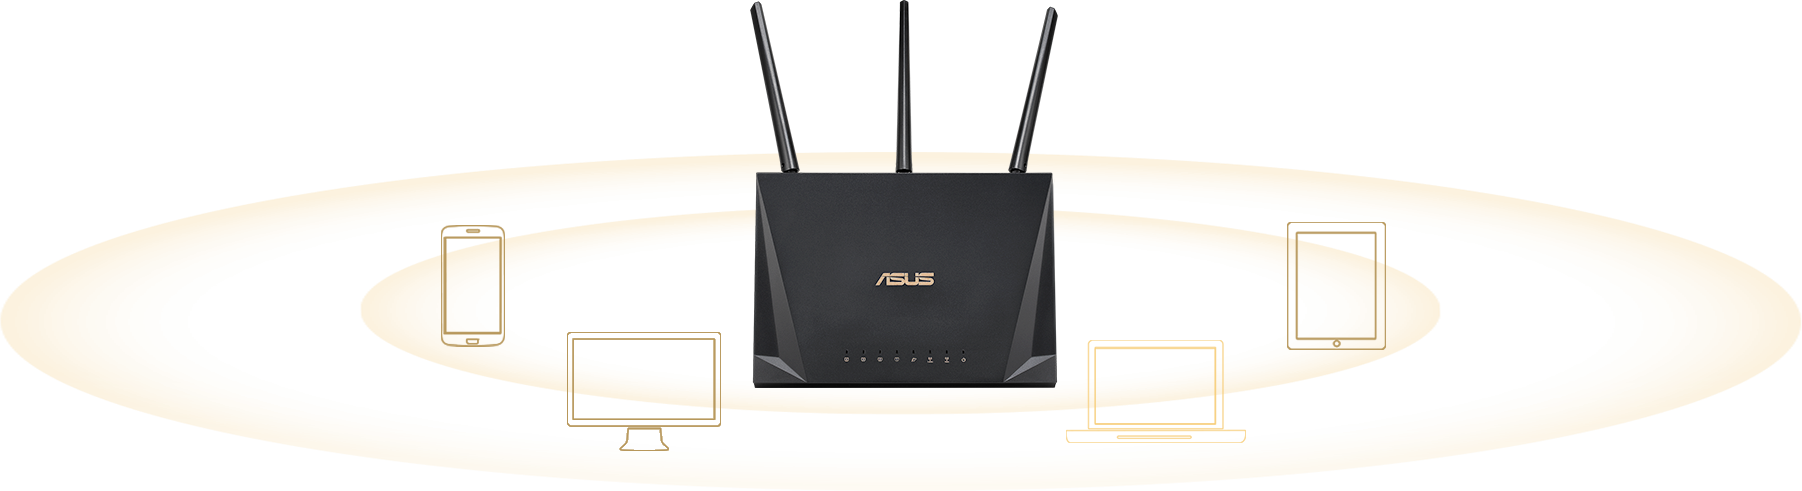 ASUS RT-AC85P comes with Multi-user MIMO, allowing RT-AC85P to serve multi-device at a time